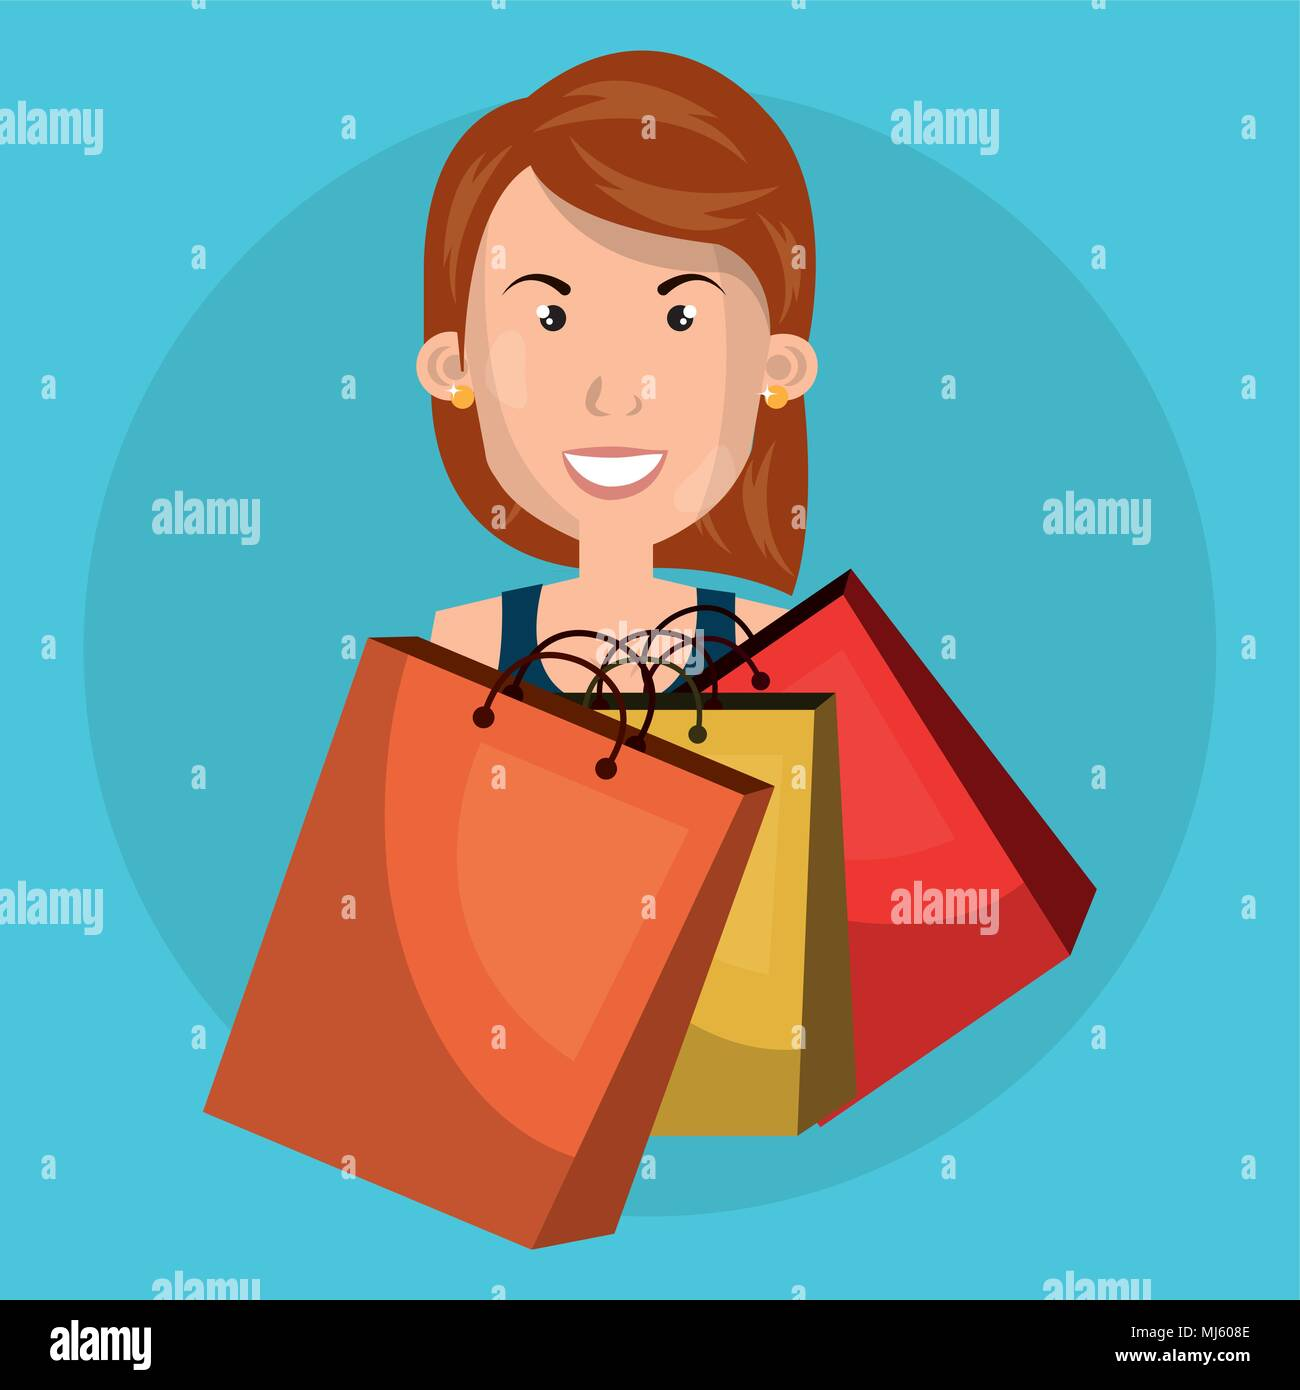 70f6a86b3 Woman Shopping Bags Stock Vector Images - Alamy